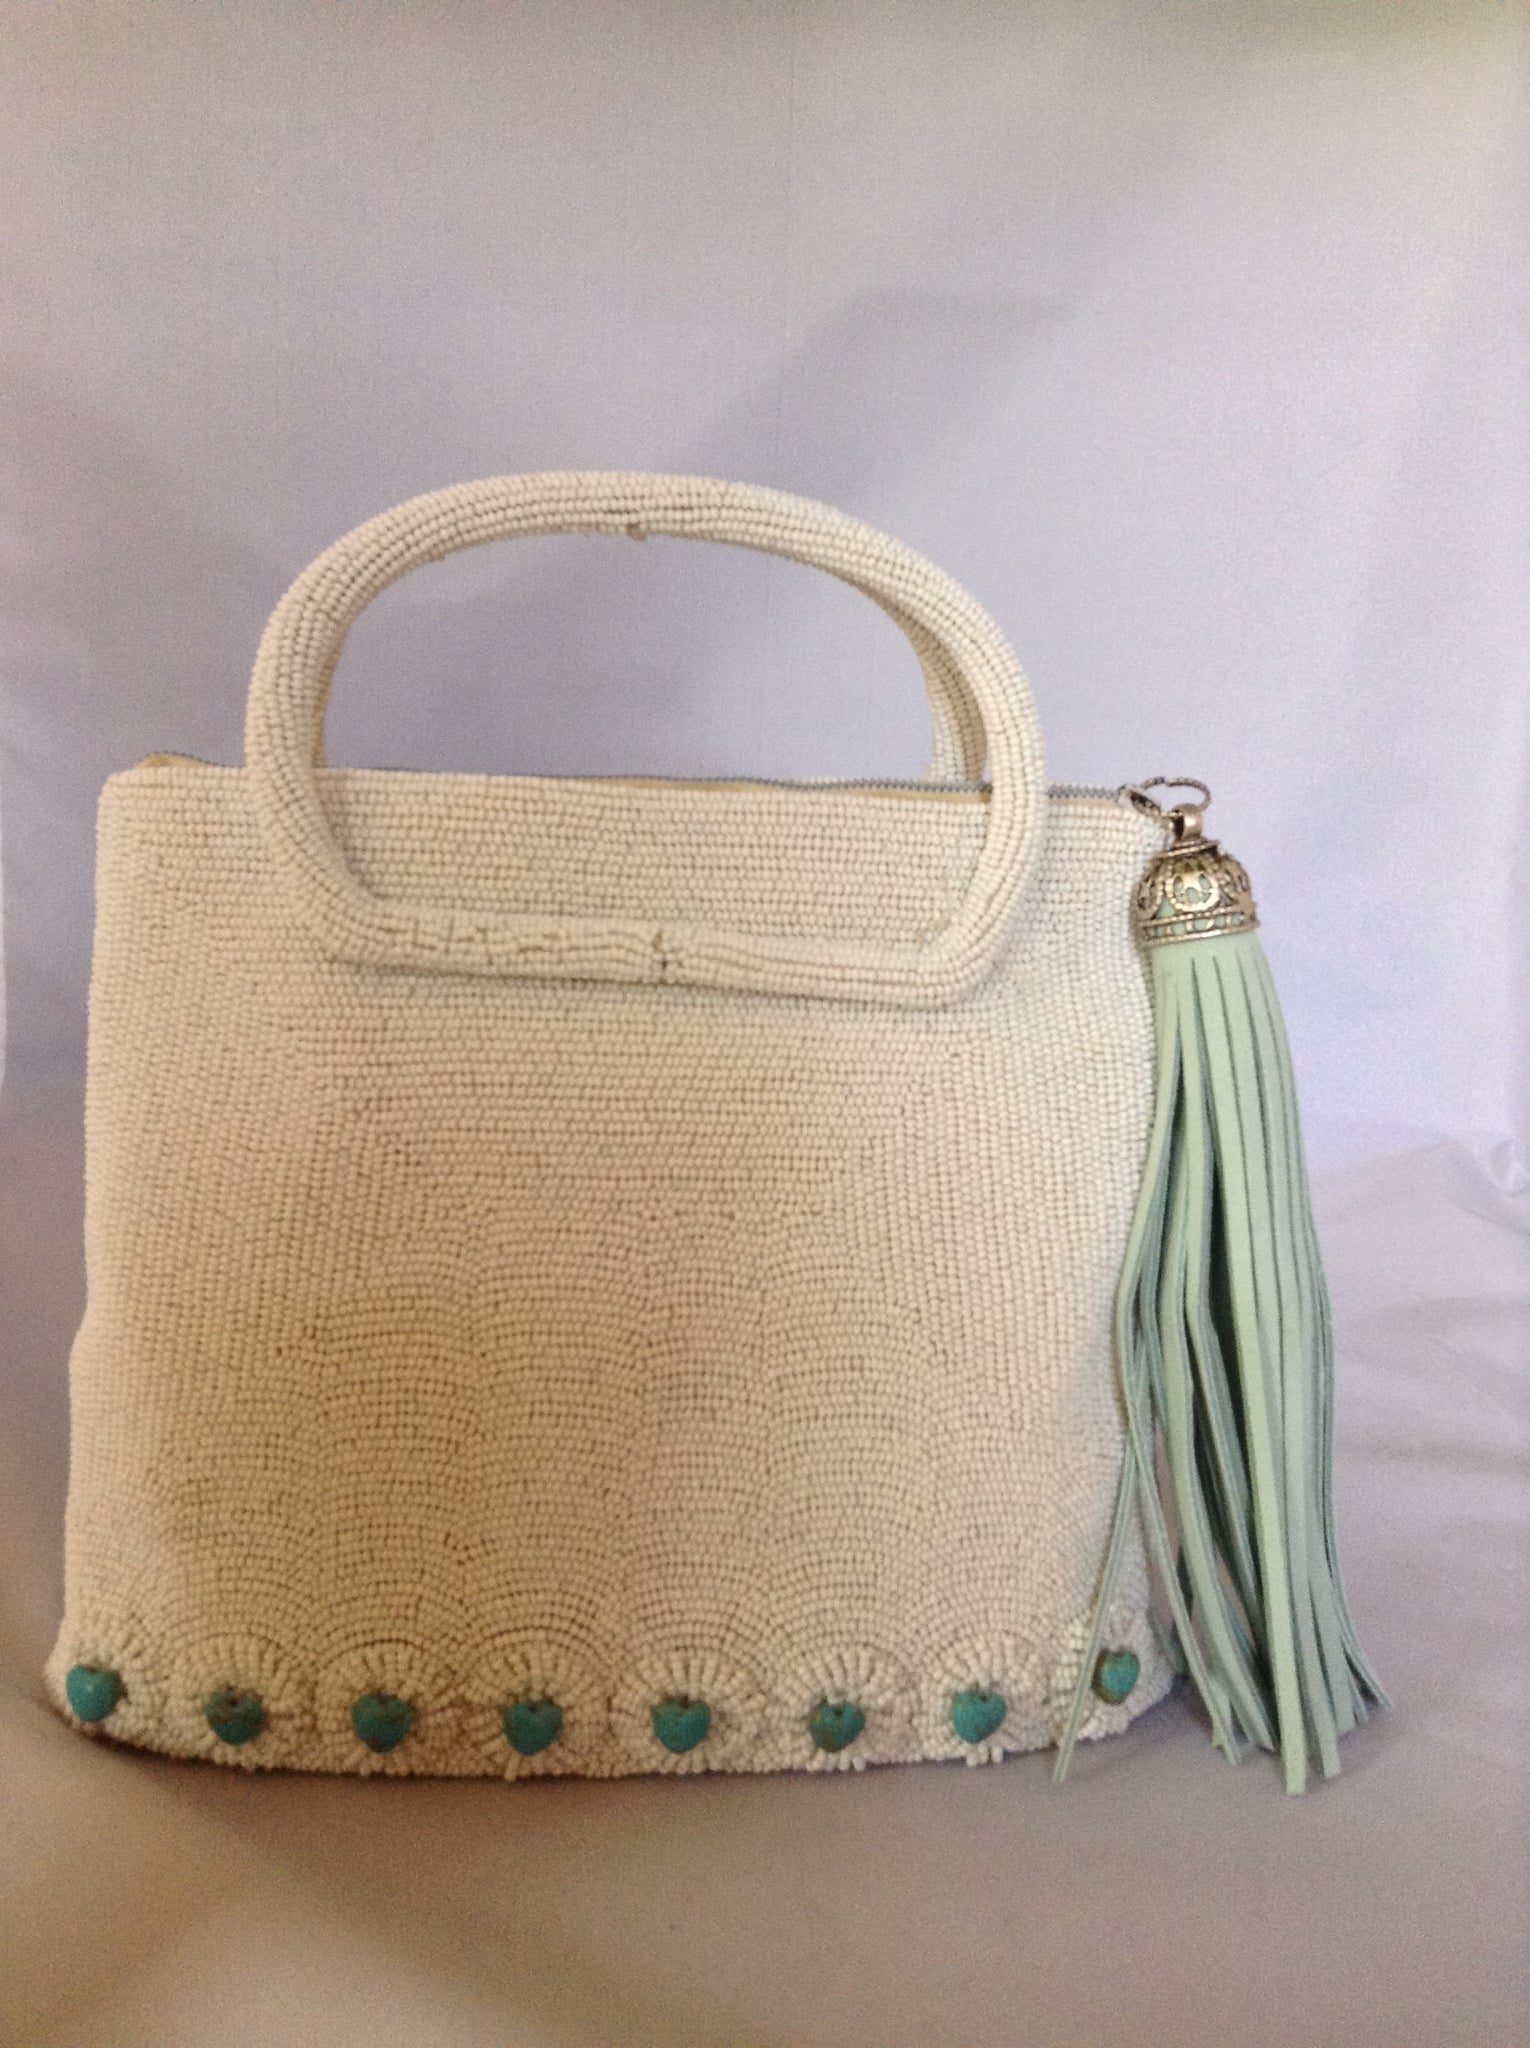 "42 genuine turquoise hearts adorn this 1950's vintage white beaded purse from Paris. With its original silk lining and aqua suede tassel you'll channel Audrey wherever you go.  Dimensions - 7.5""Height; 8"" Width; 3"" Depth; Handle 3"""